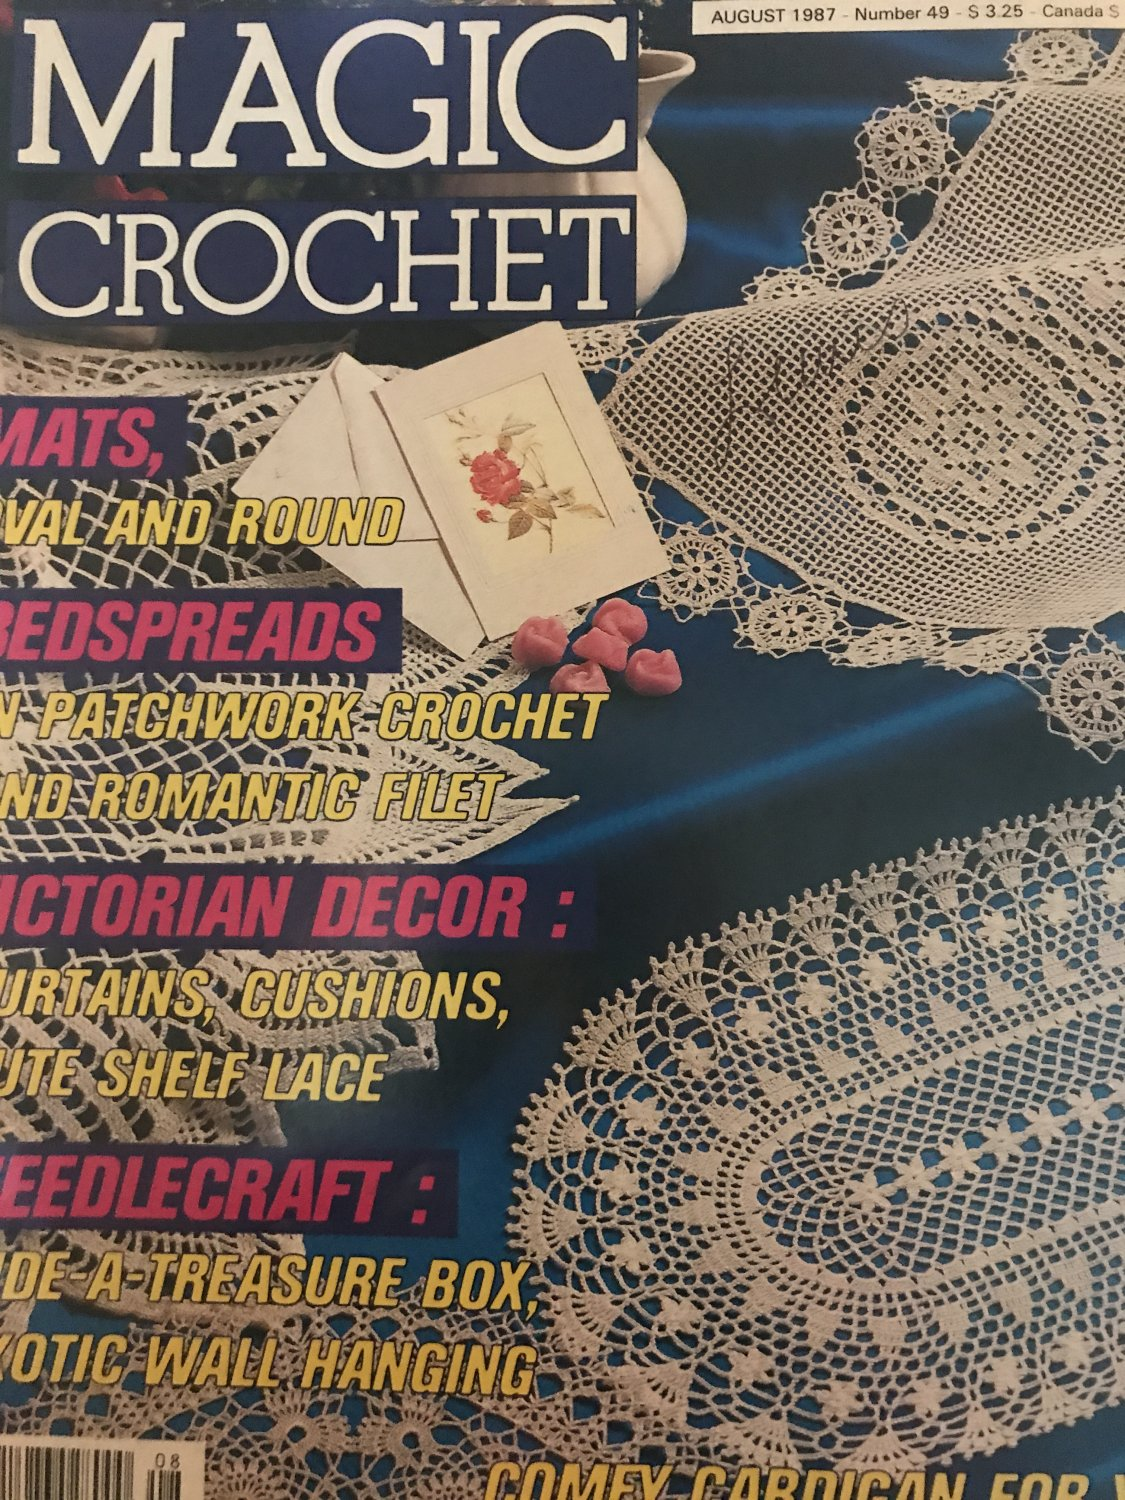 Magic Crochet Pattern Magazine Number 49 August 1987